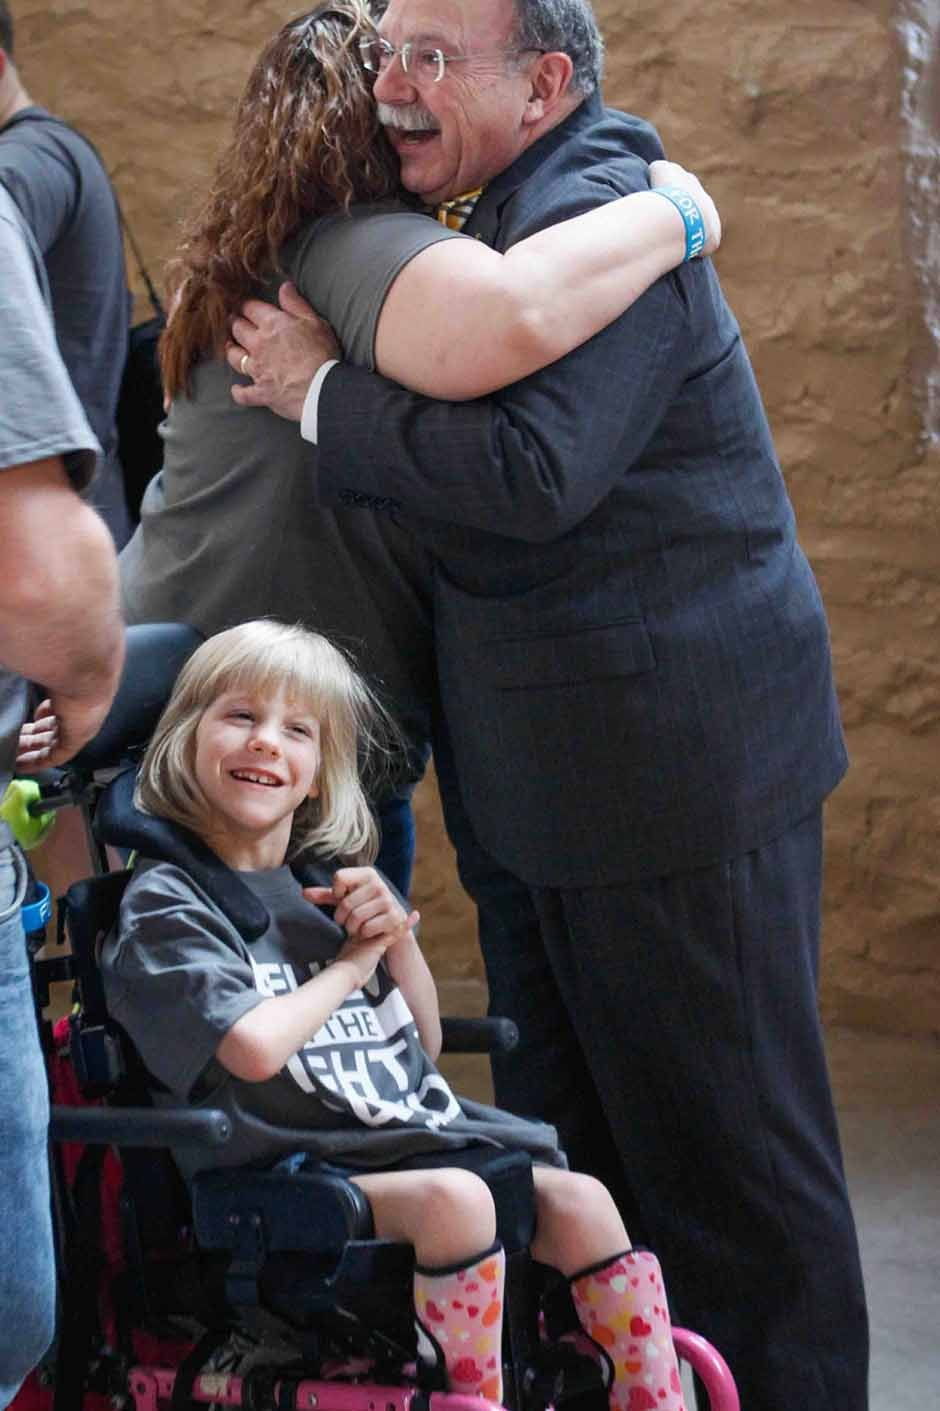 Loftin hugging a woman next to a smilig girl in a wheelchair.